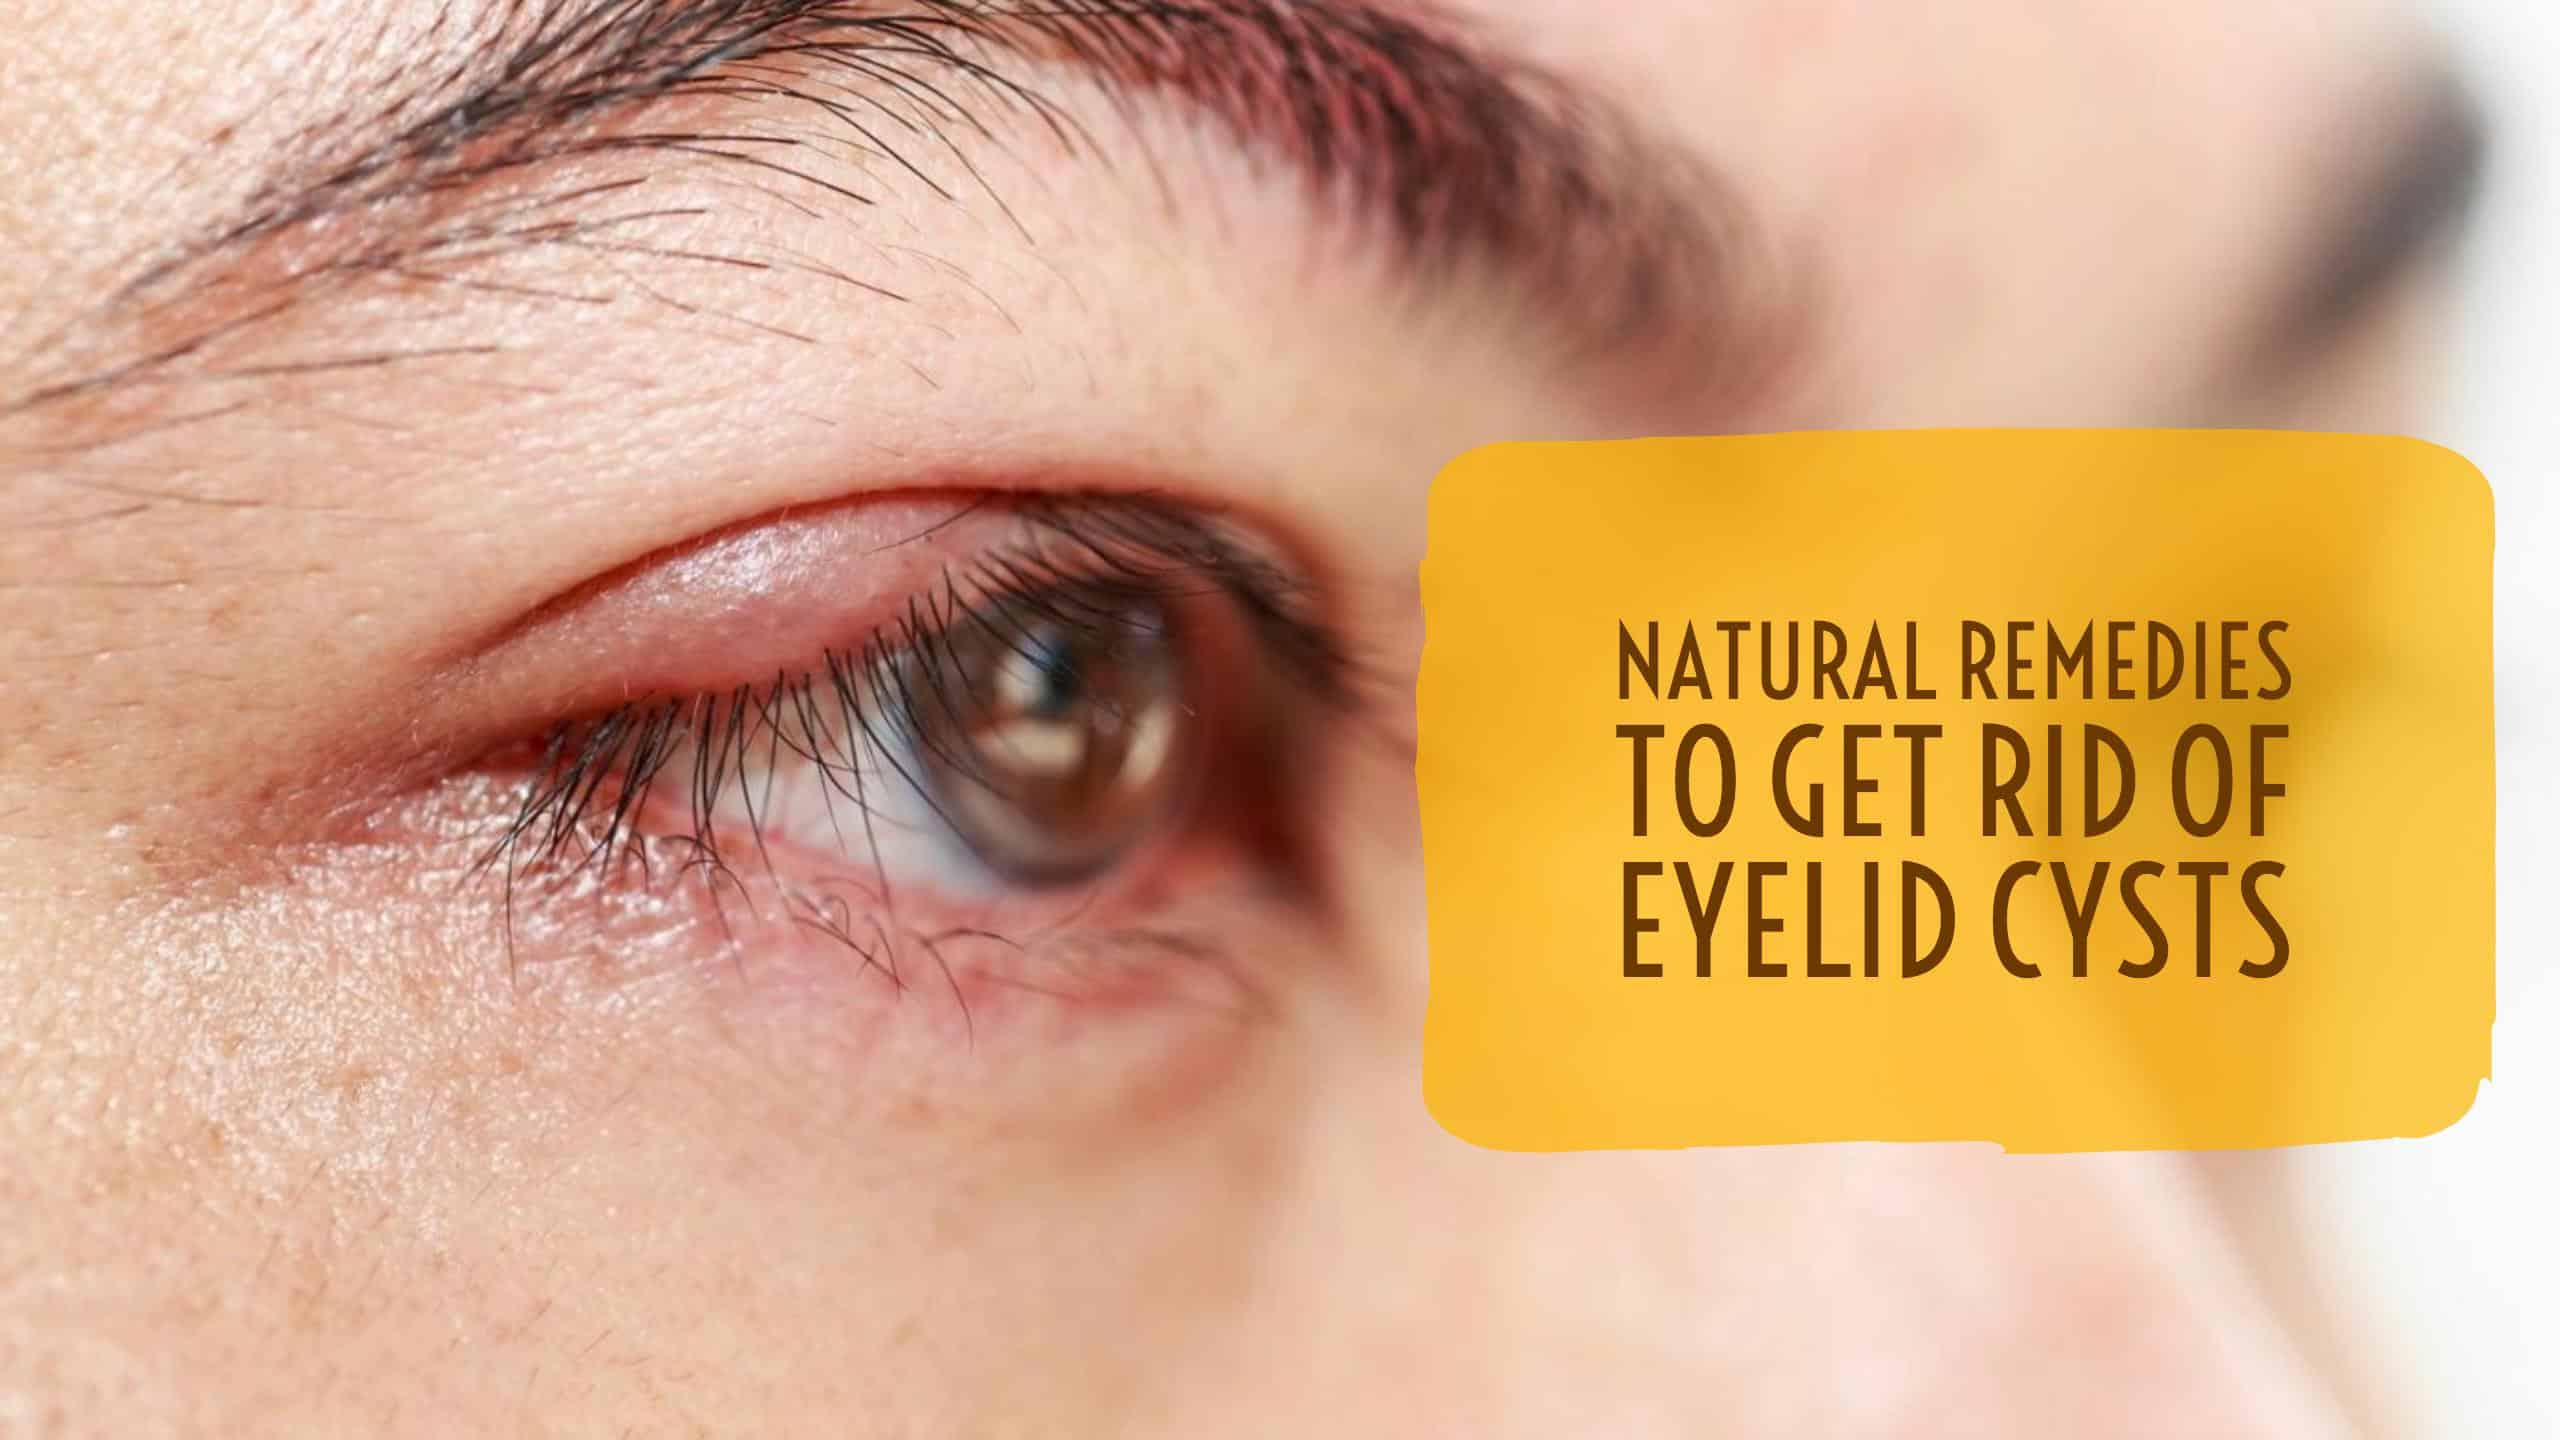 Eye Cyst Treatment Natural